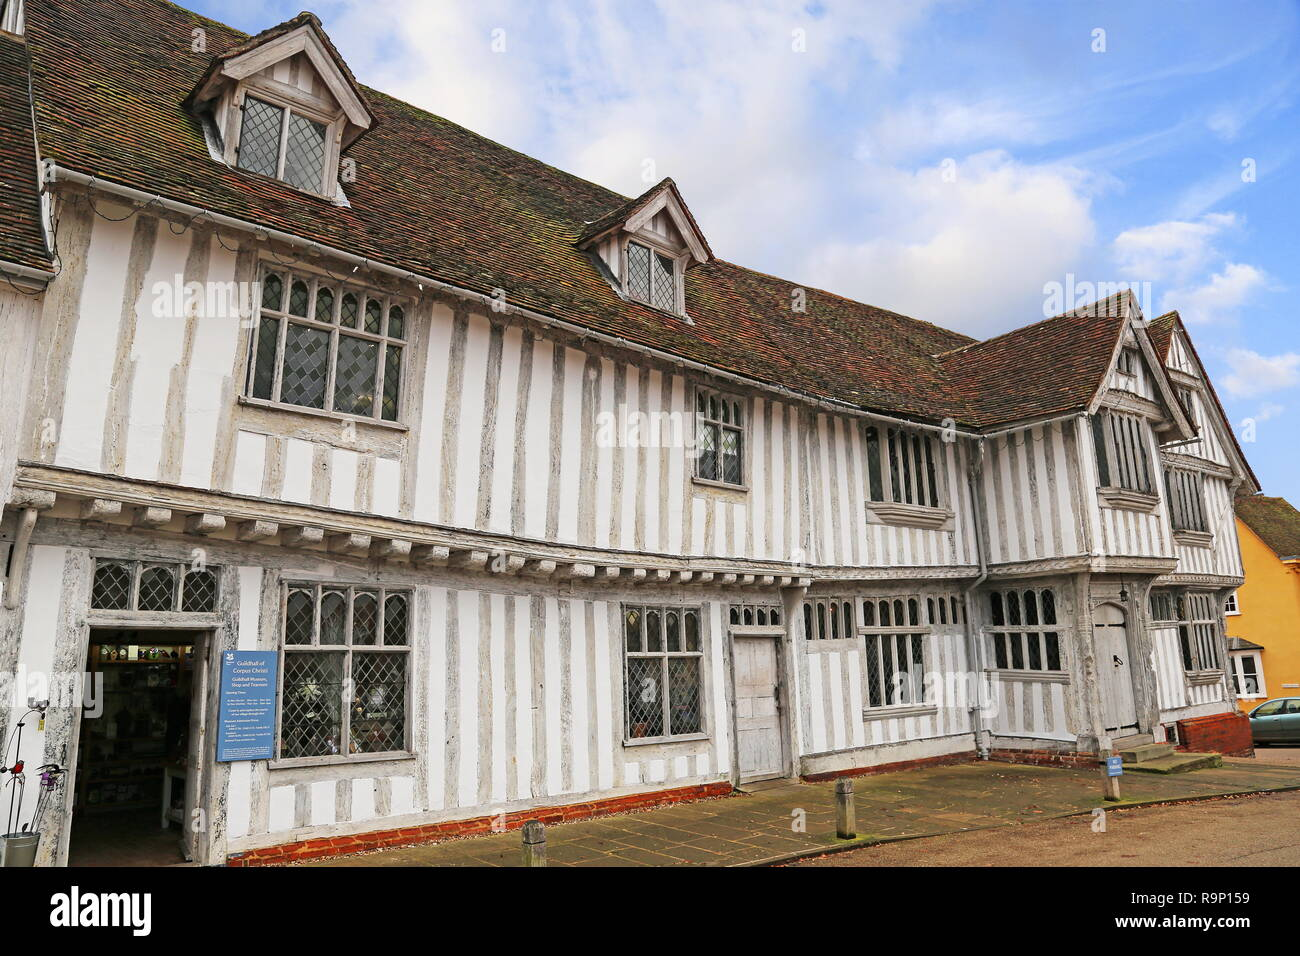 Guildhall of Corpus Christi, Market Place, Lavenham, Babergh district, Suffolk, East Anglia, England, Great Britain, United Kingdom, UK, Europe - Stock Image